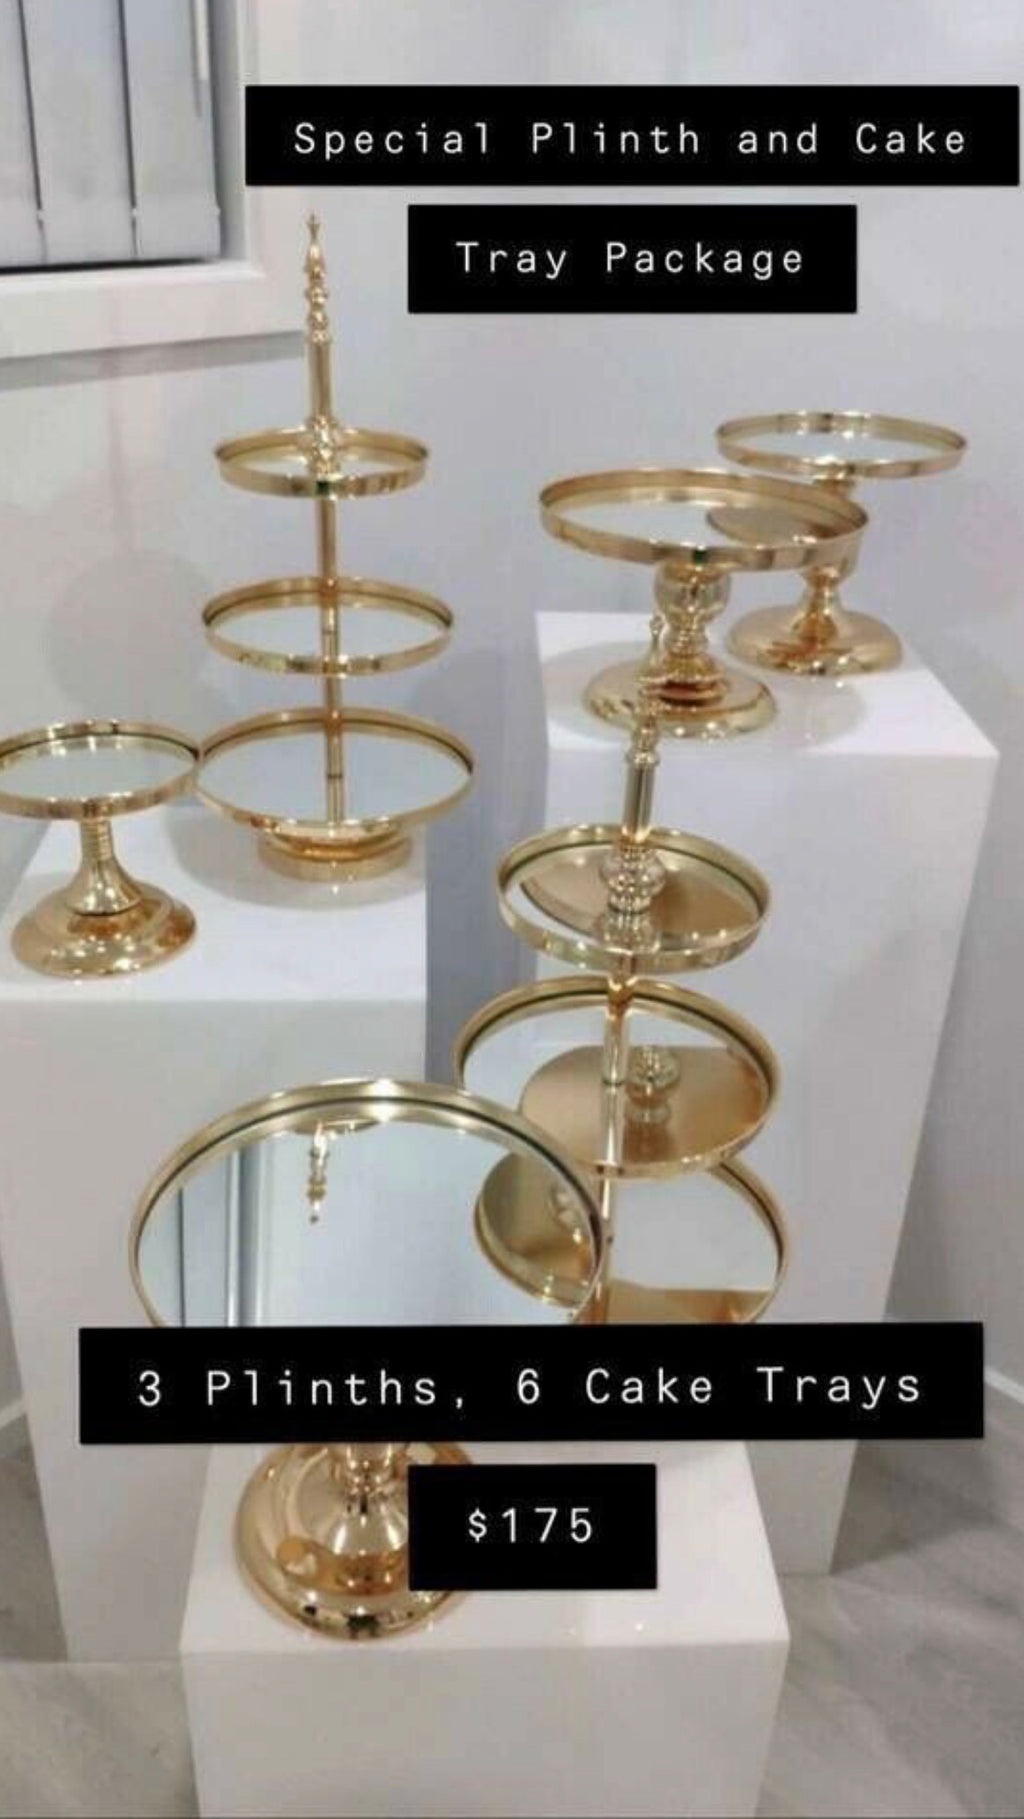 Plinths & Cake Trays Package